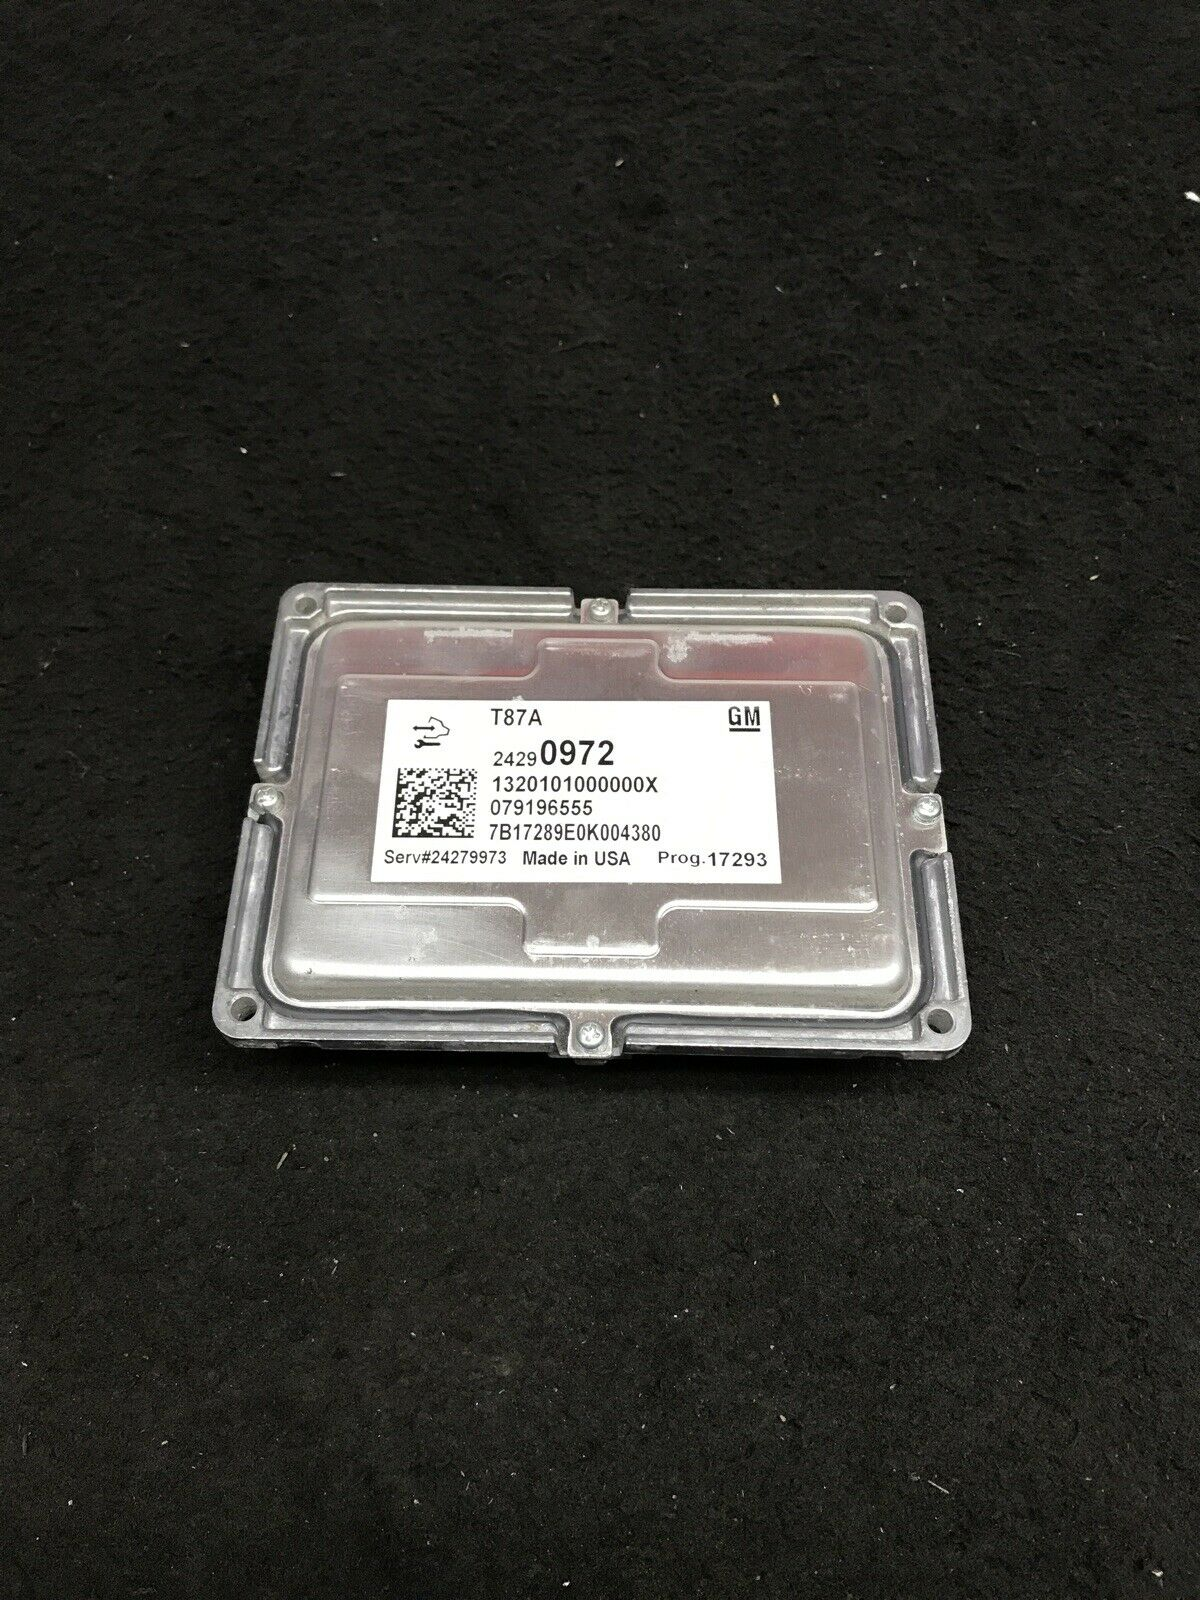 BUICK ENCLAVE GMC 2017-2019 Transmission ID Control Module 24290972 OEM